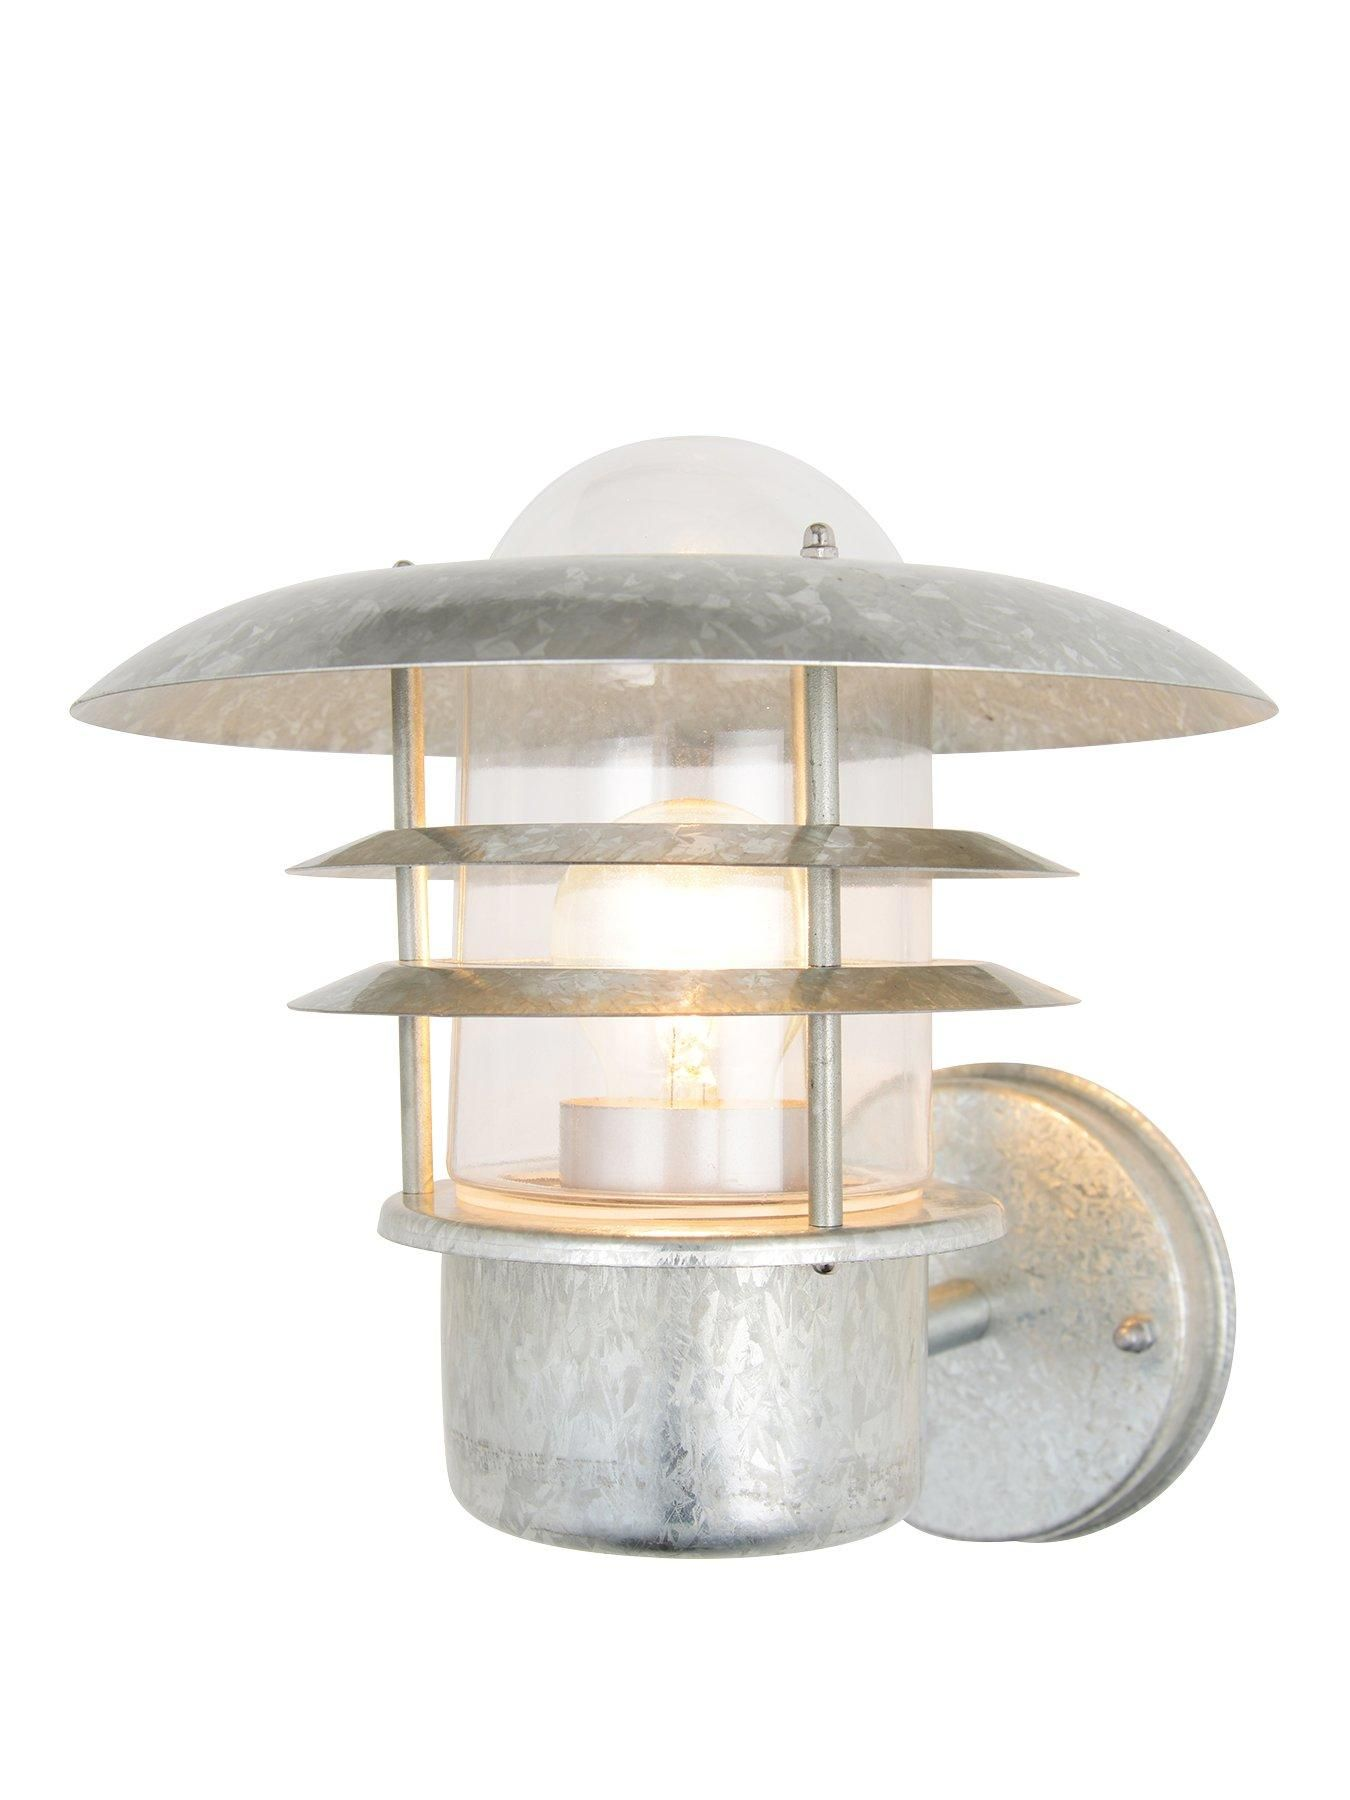 This sturdy and stylish Zinc Vulcan Tiered Stainless Steel Lantern is ideal  for lighting up outdoor spaces. This wall lantern light features louvered  shades ... 3da784869